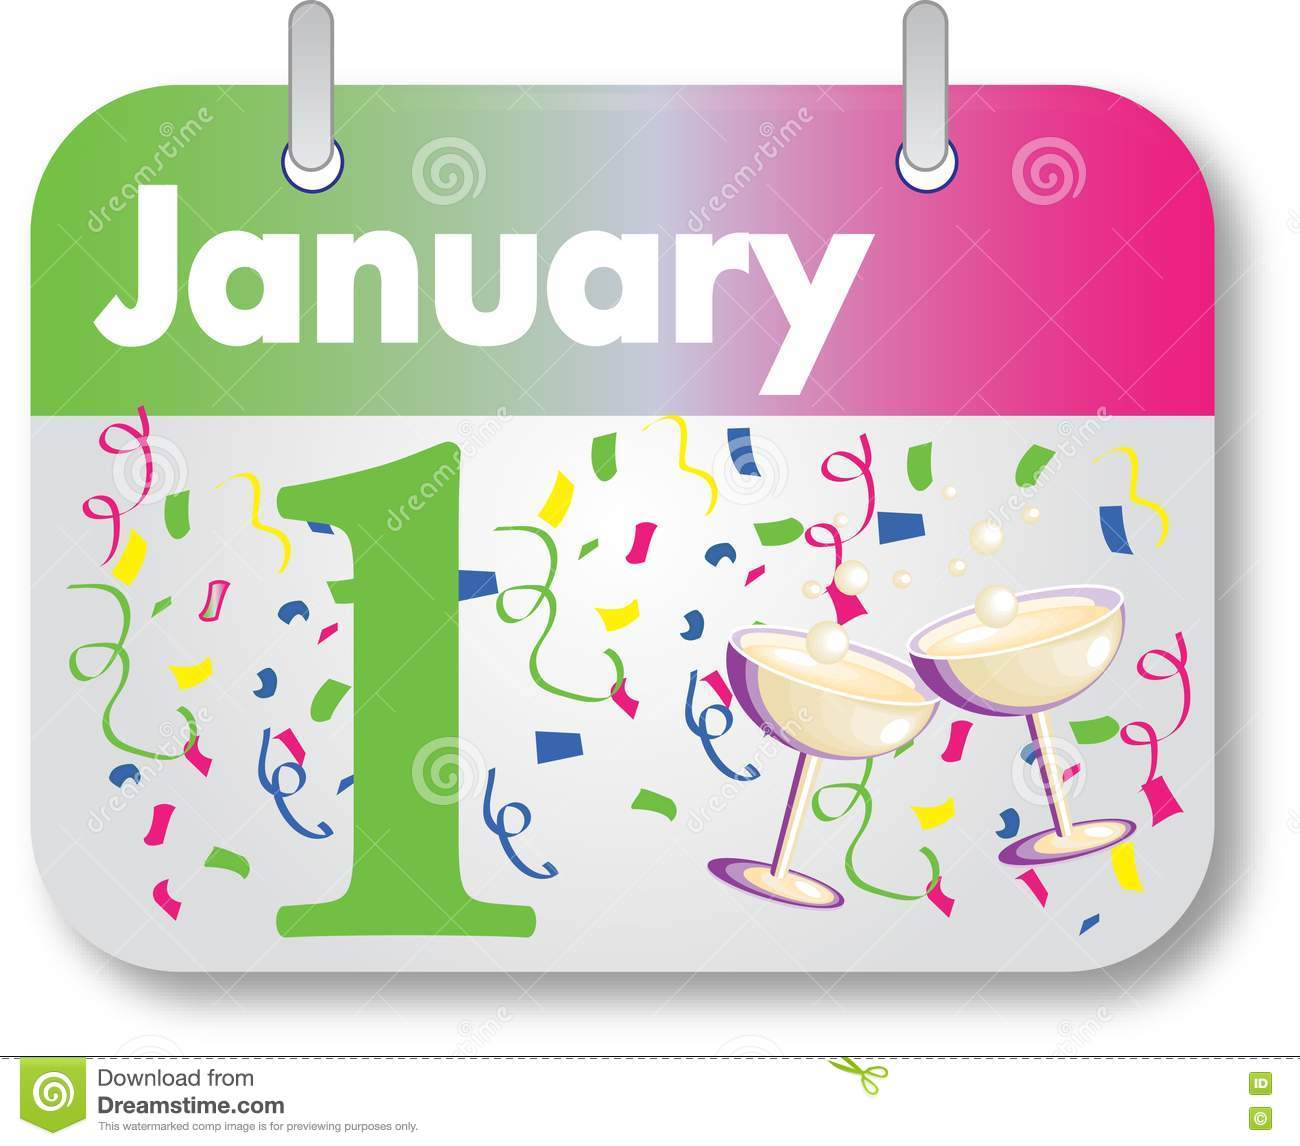 New Years Day Calendar Date Stock Image - Image: 17358341